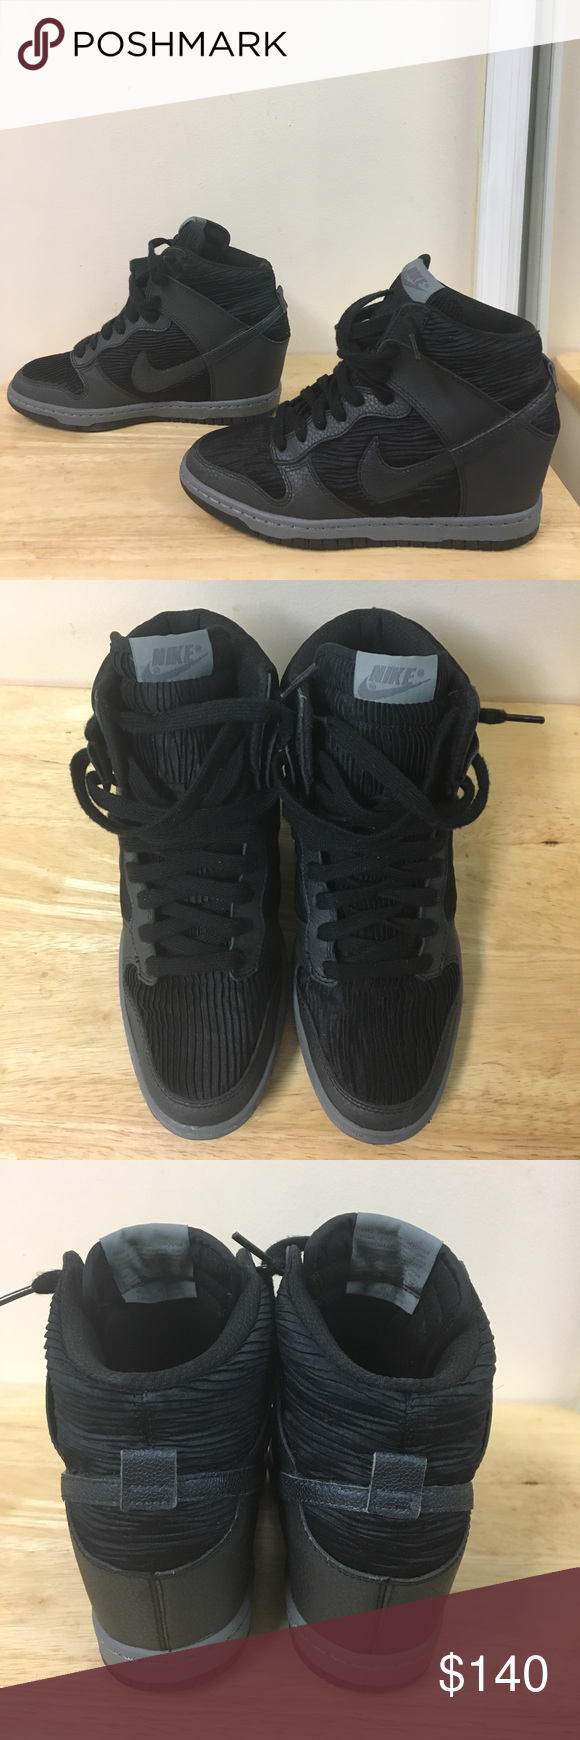 ea7b7a4c6 If anymore pictures are needed or questions...drop a direct message! 2015 Nike  Dunk Sky Hi Black Grey Metallic Wedge Women Size 7.5 Shoes 528899-015 ...